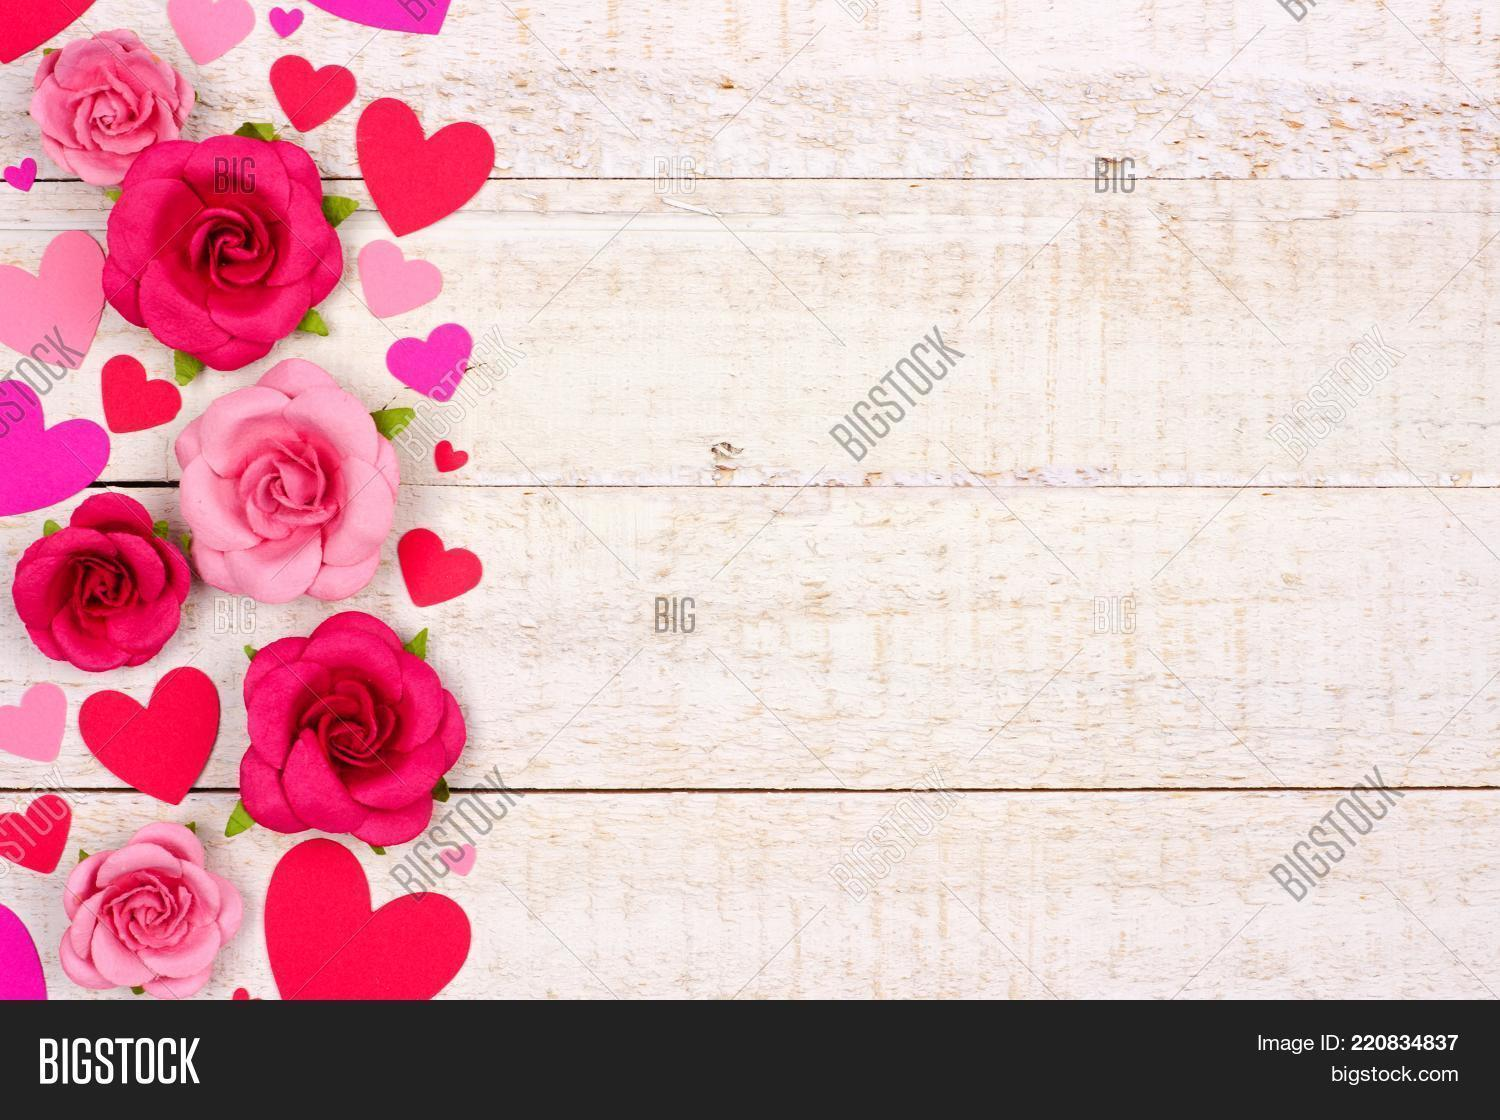 Valentines Day Side Border Of Red And Pink Paper Hearts Roses Against A Rustic White